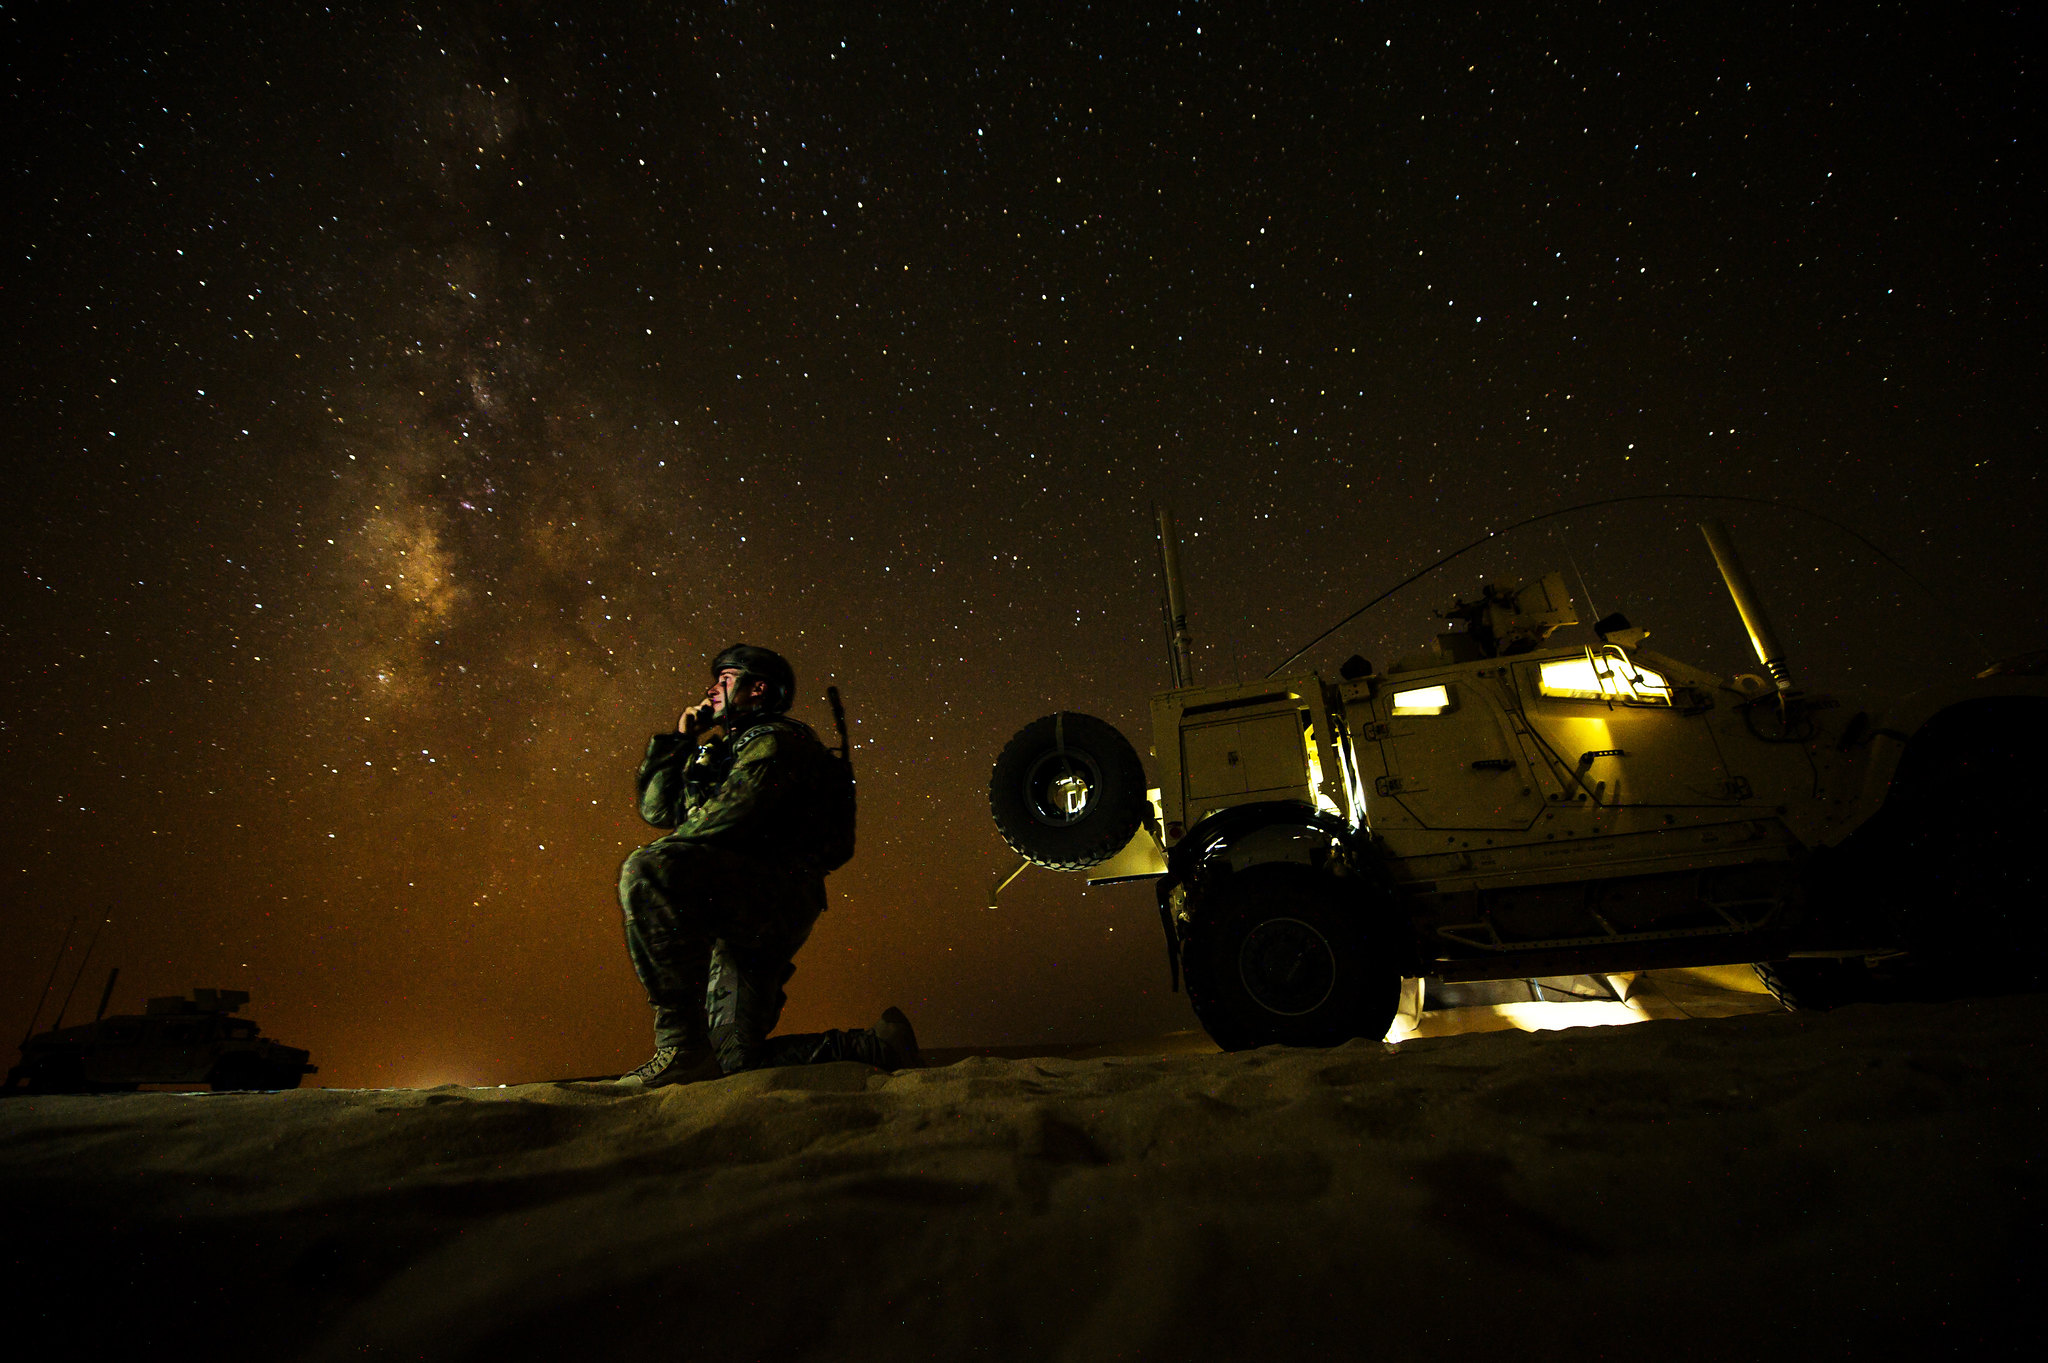 JTAC Support Operation Spartan Shield [Image 1 of 9]